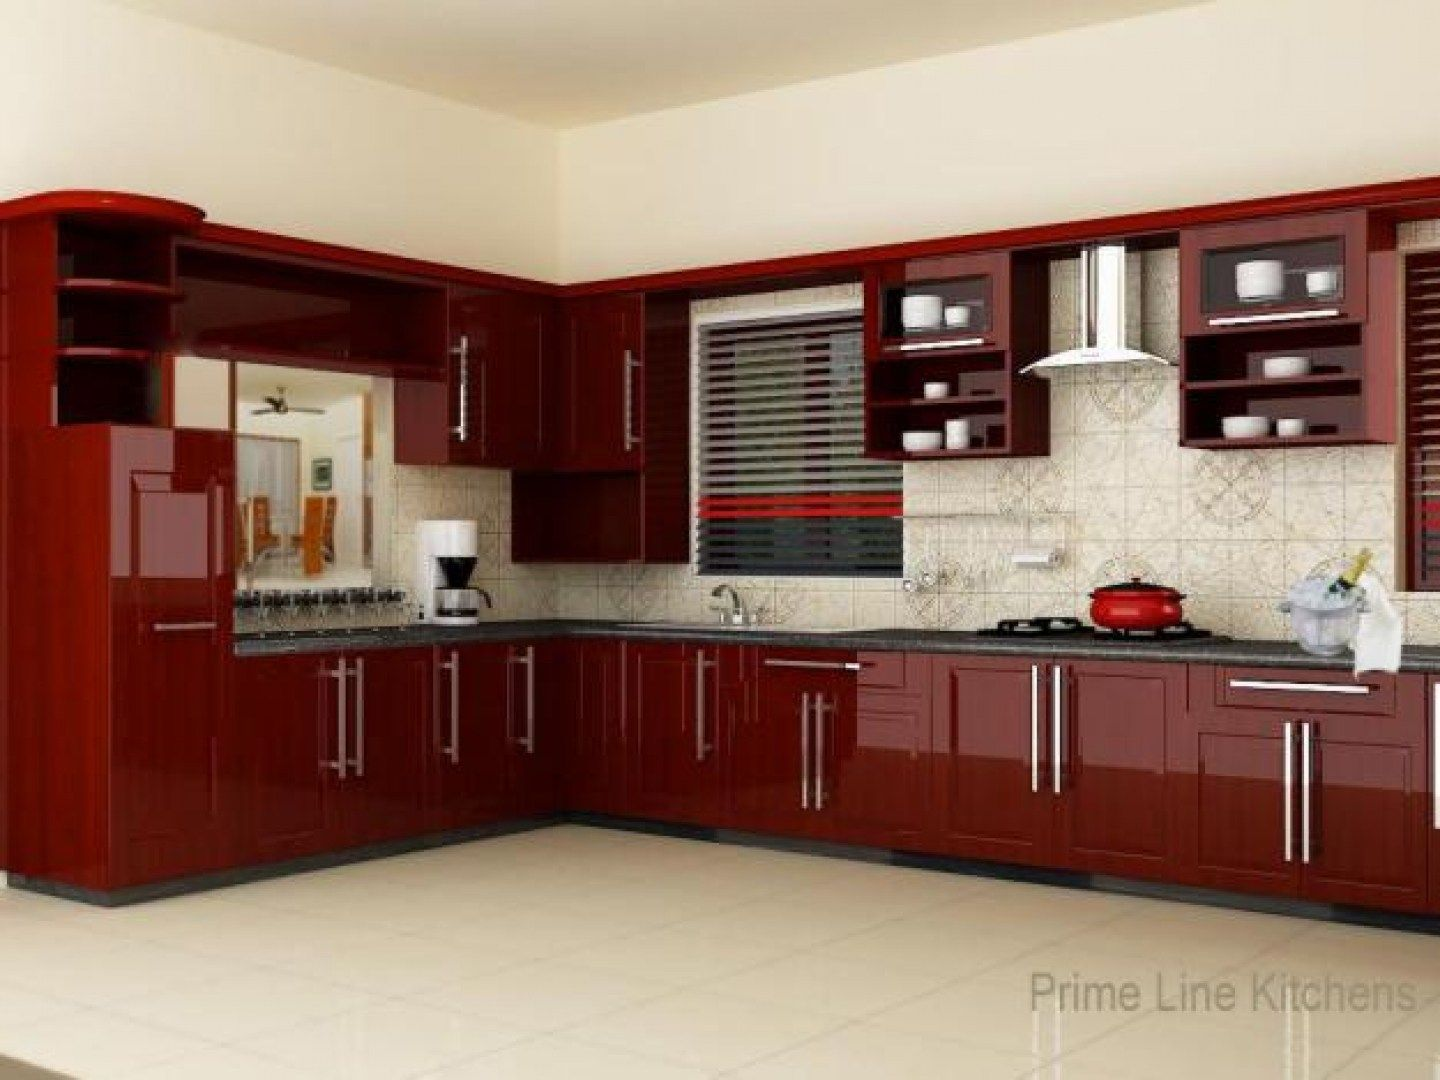 Kitchen design ideas kitchen woodwork designs hyderabad for New kitchen ideas